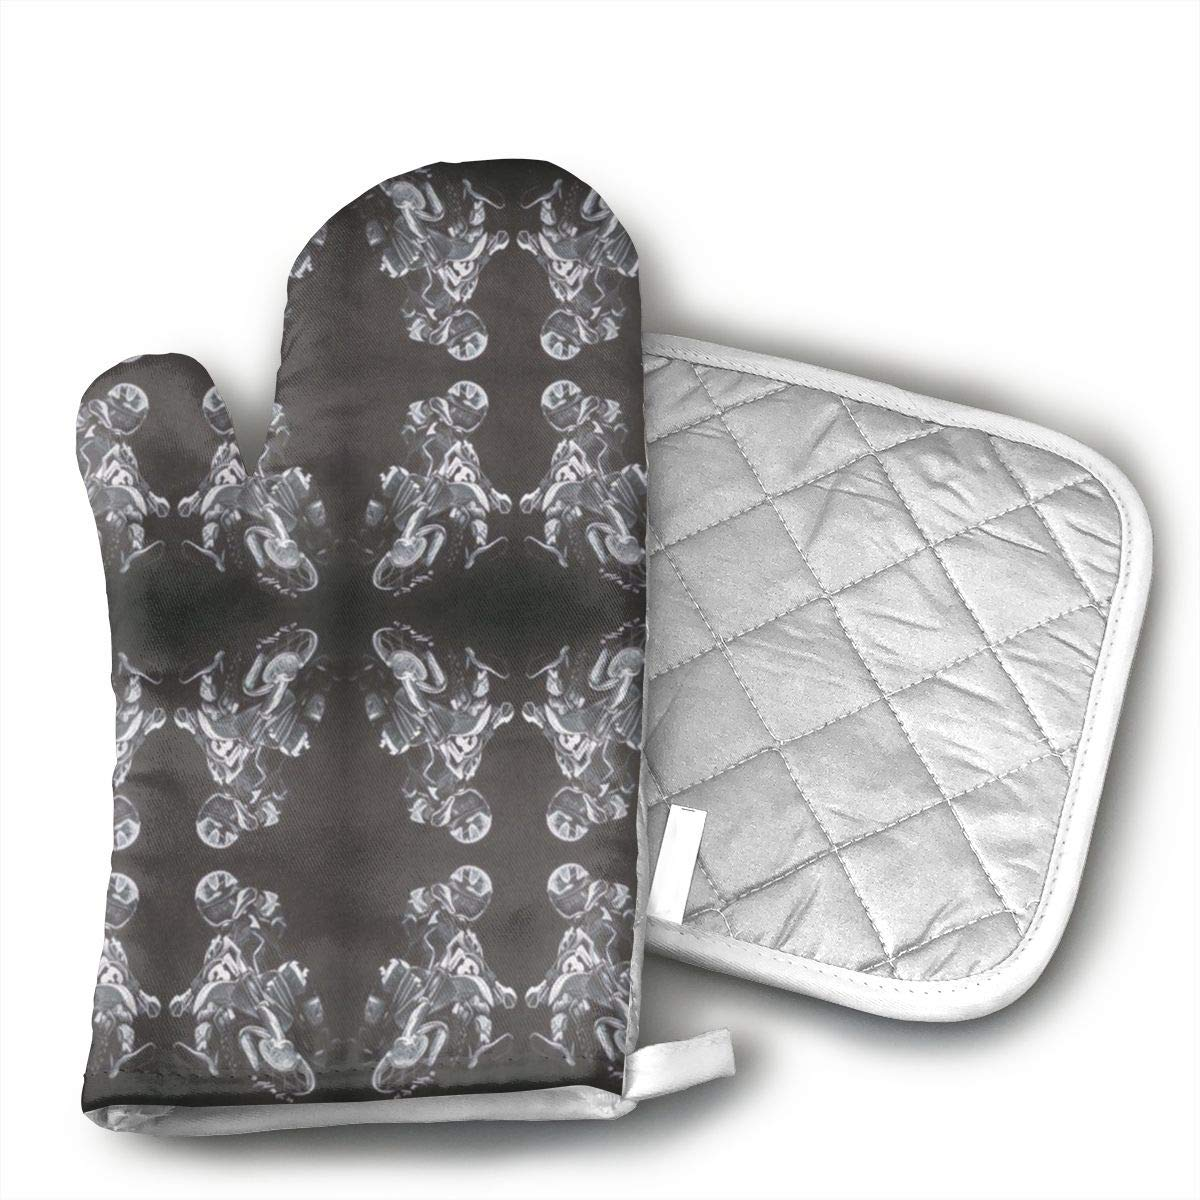 Jiqnajn6 Motorcycle Dirt Bike Motocross Oven Mitts,Heat Resistant Oven Gloves, Safe Cooking Baking, Grilling, Barbecue, Machine Washable,Pot Holders.